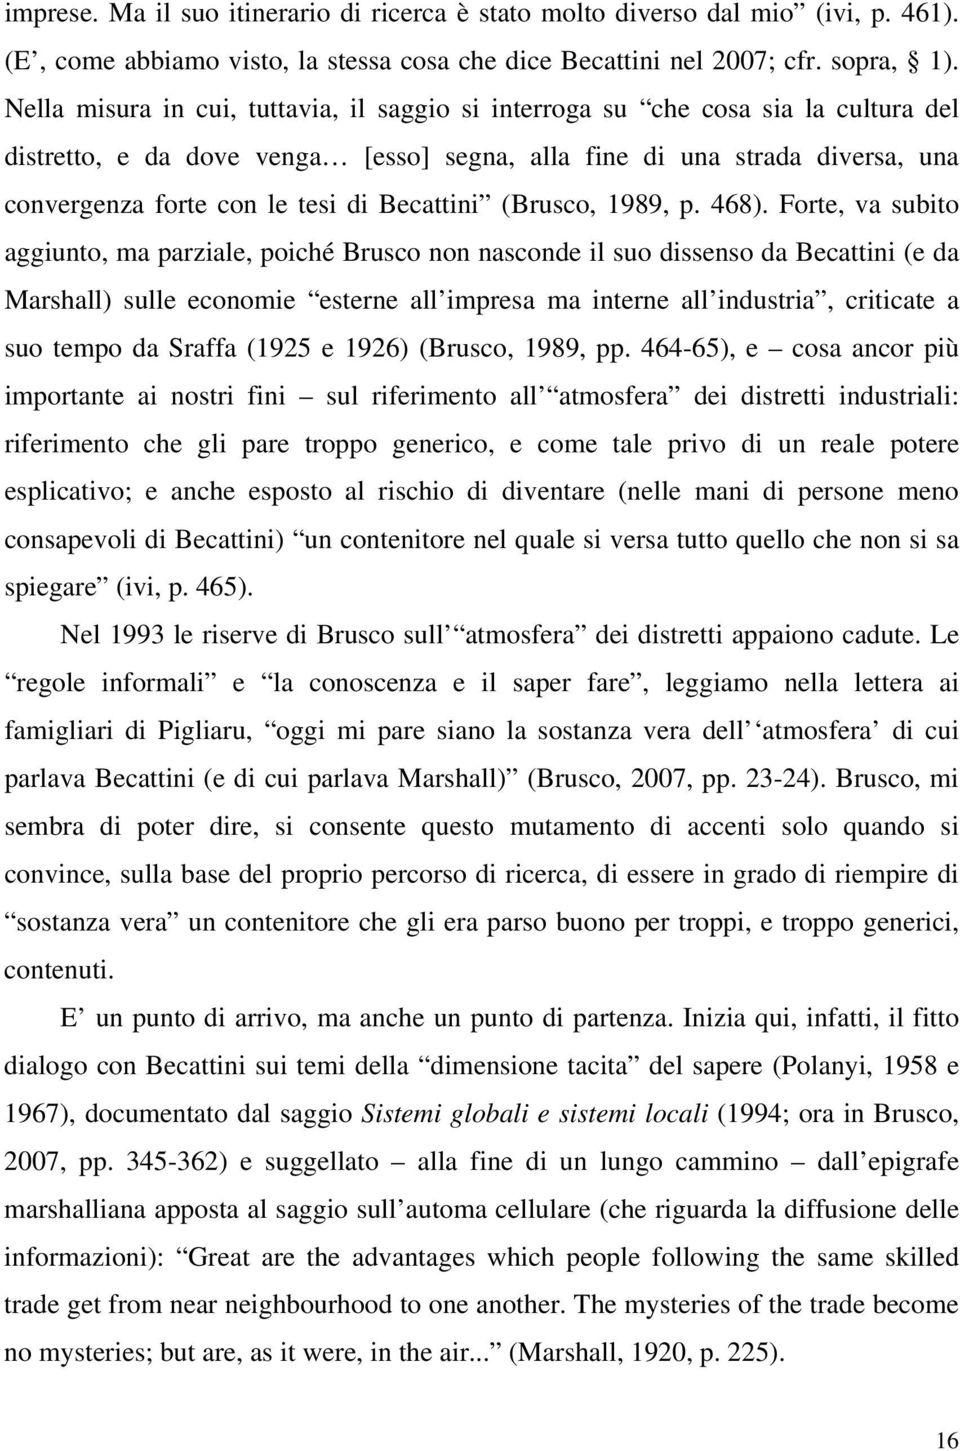 Becattini (Brusco, 1989, p. 468).